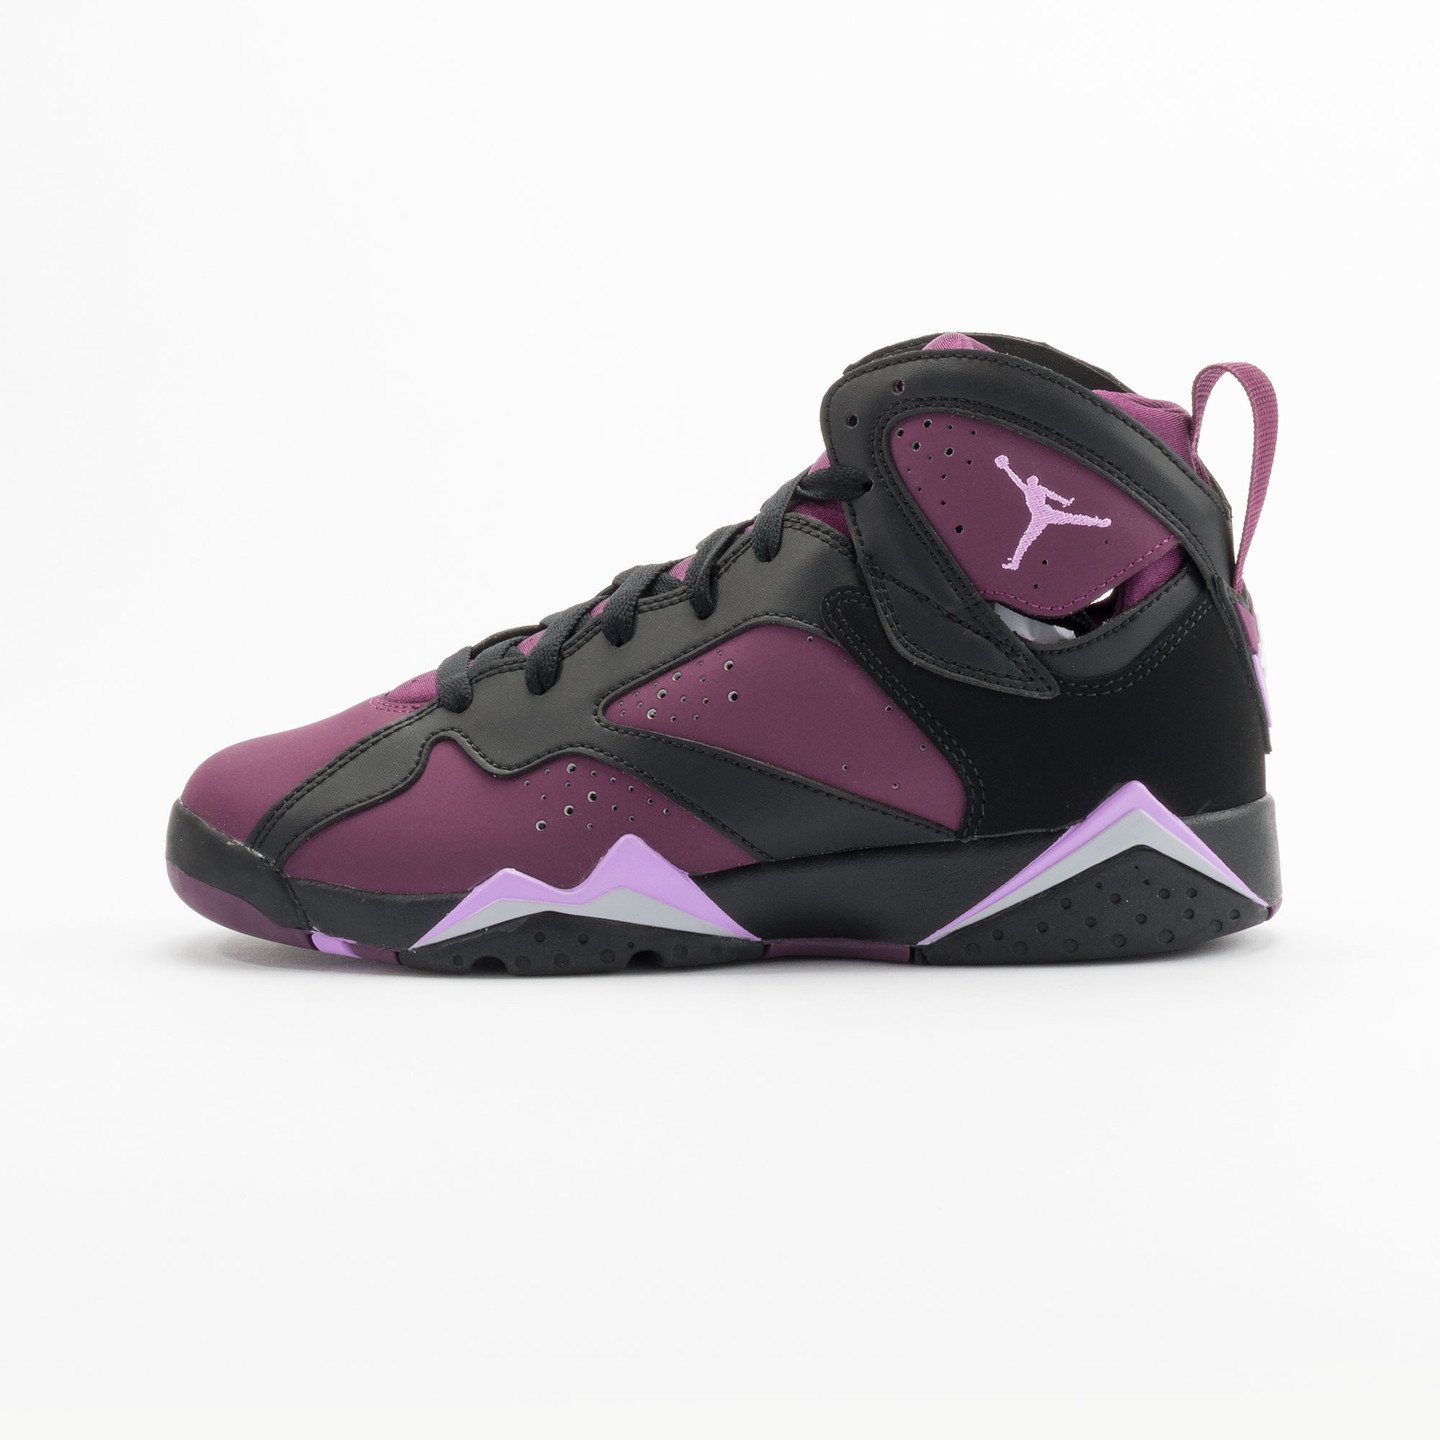 Jordan Air Jordan 7 Retro GG Mulberry / Fuchsia / Black 442960-009-38.5